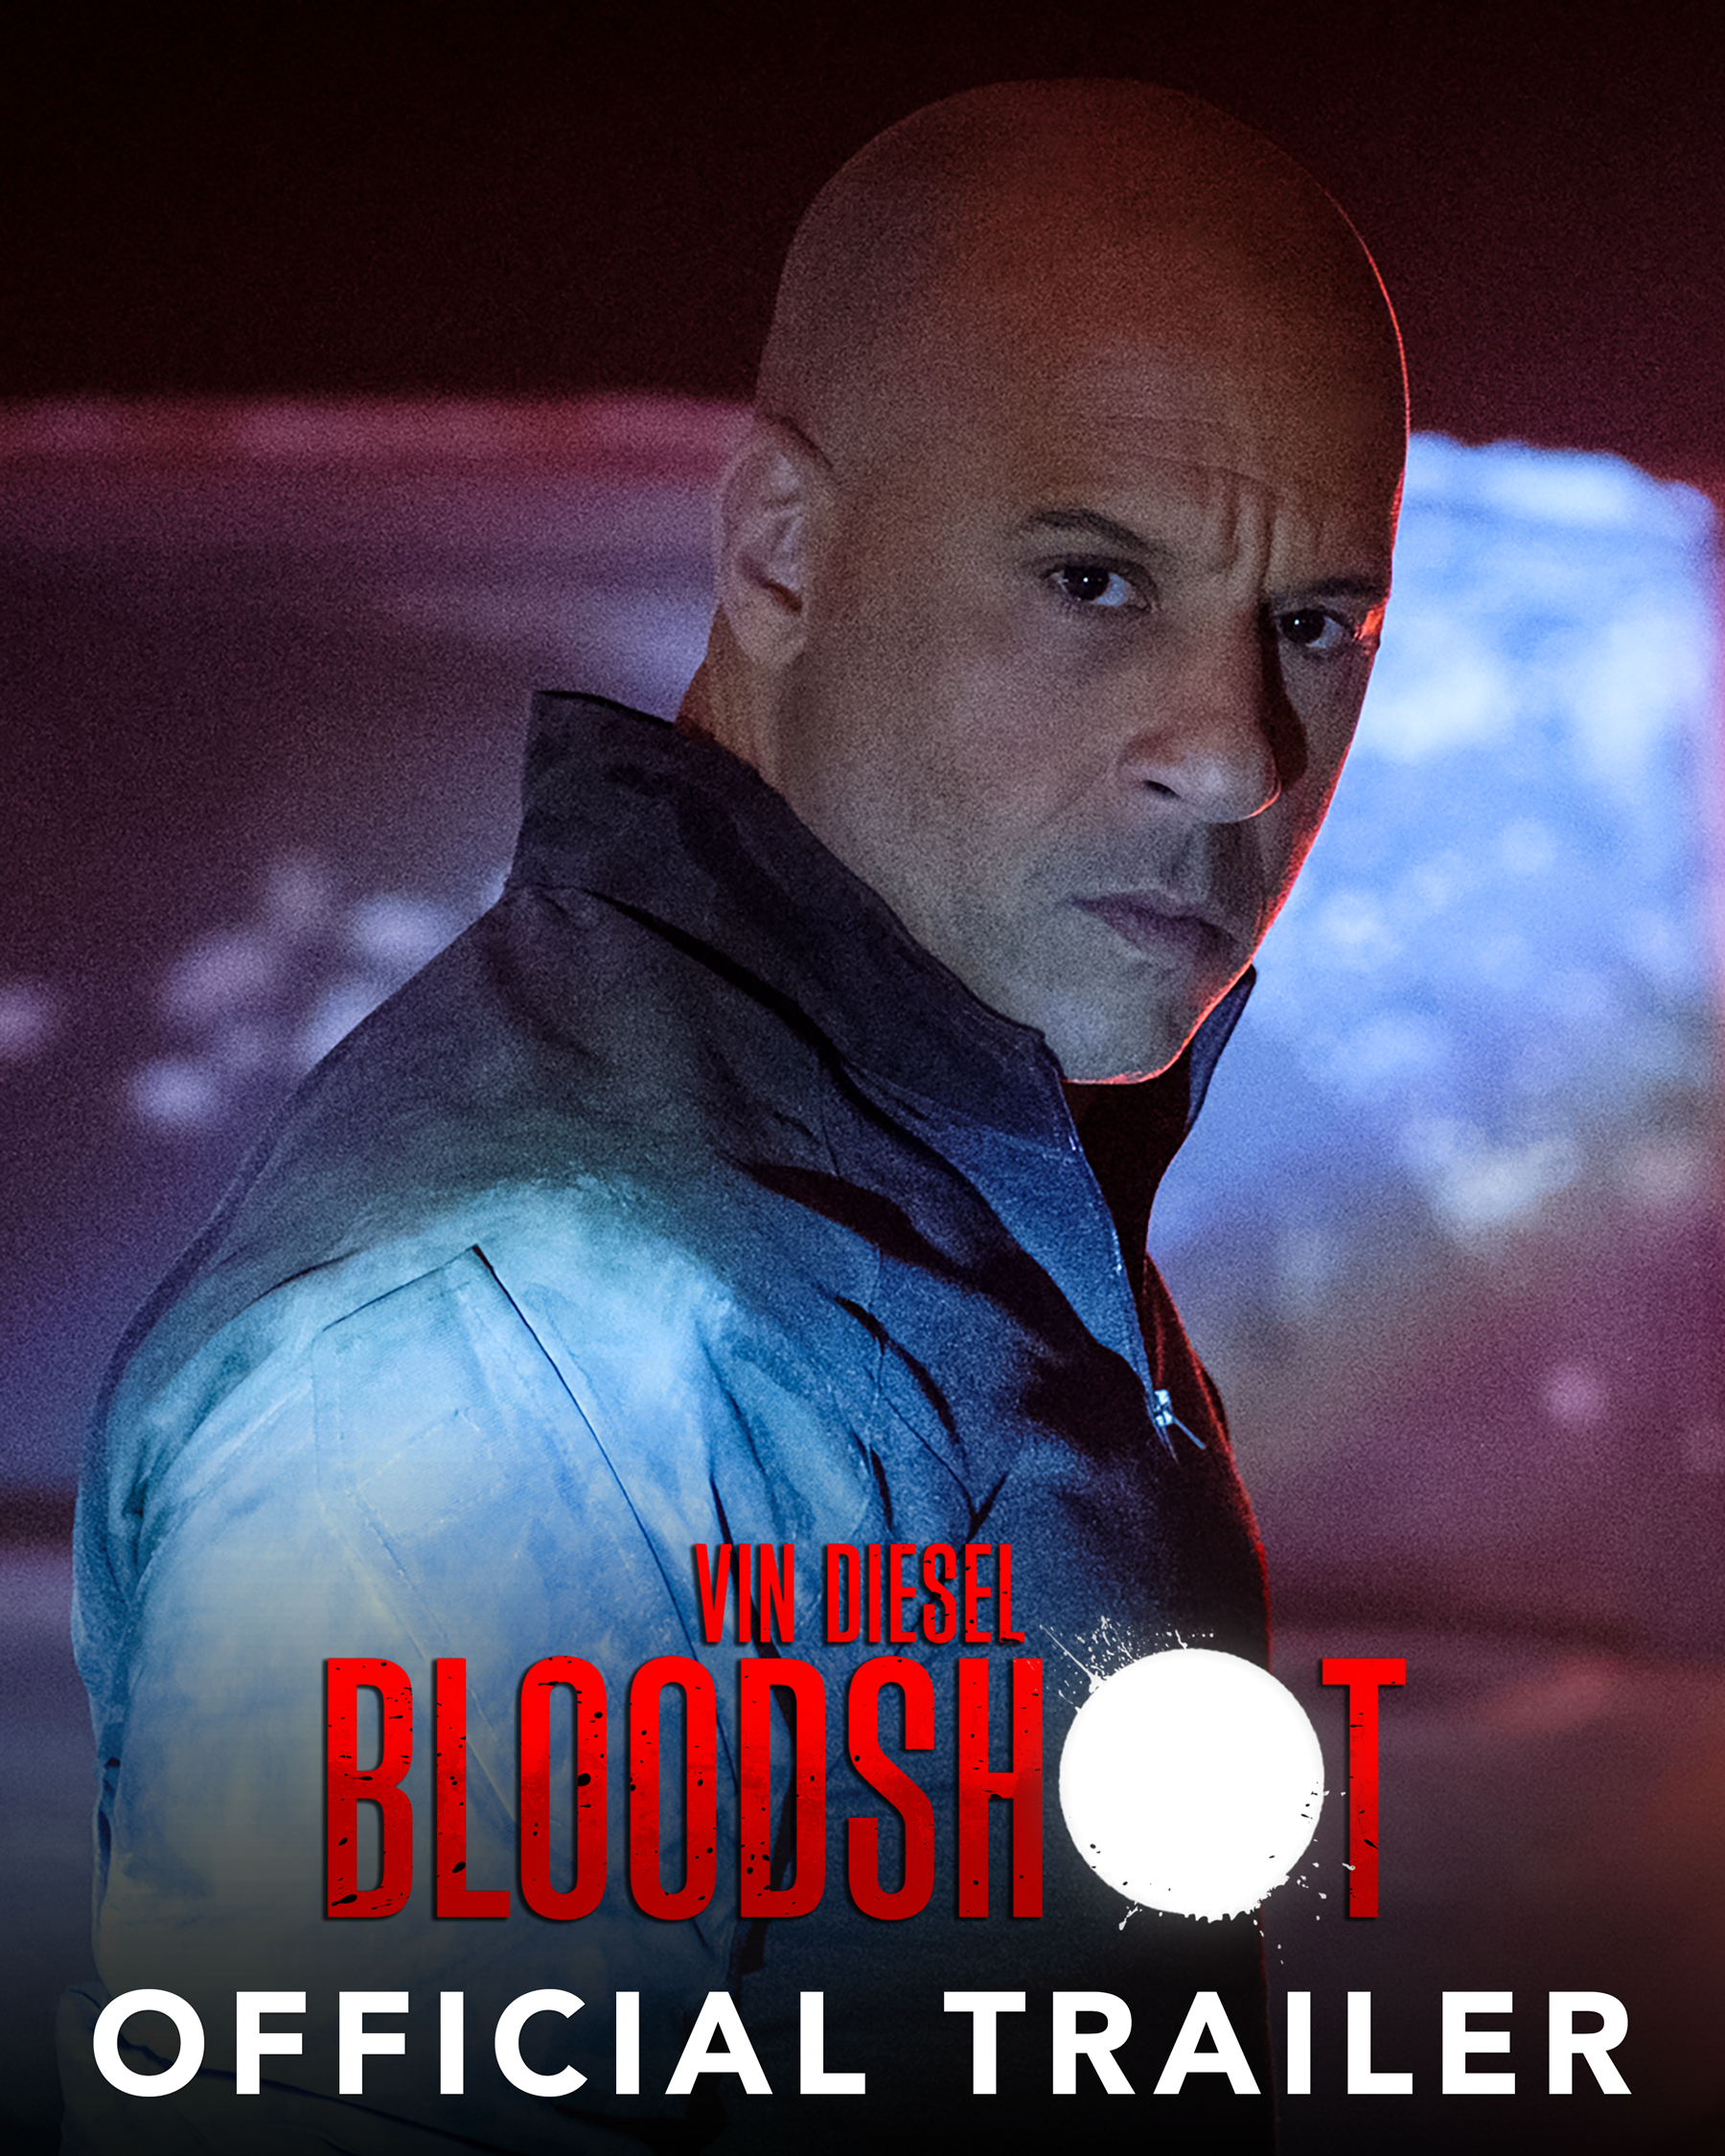 Bloodshot Trailer New Movies To Watch New Movies 2020 Best New Movies